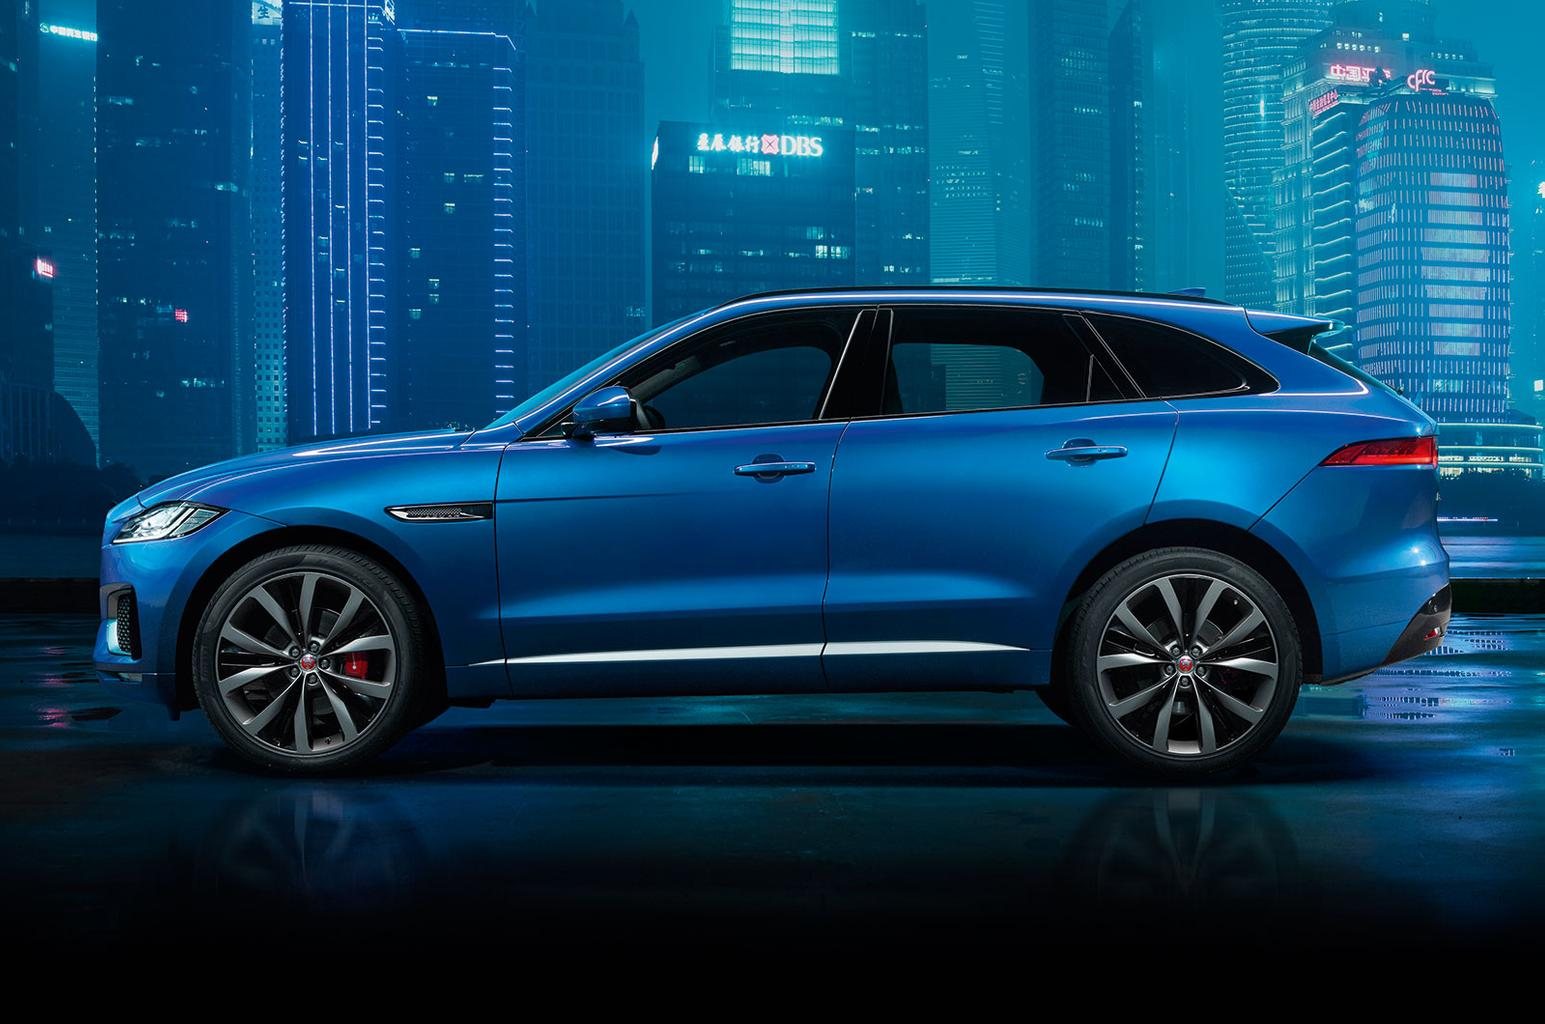 Jaguar F-Pace - What Car? Readers give their verdict